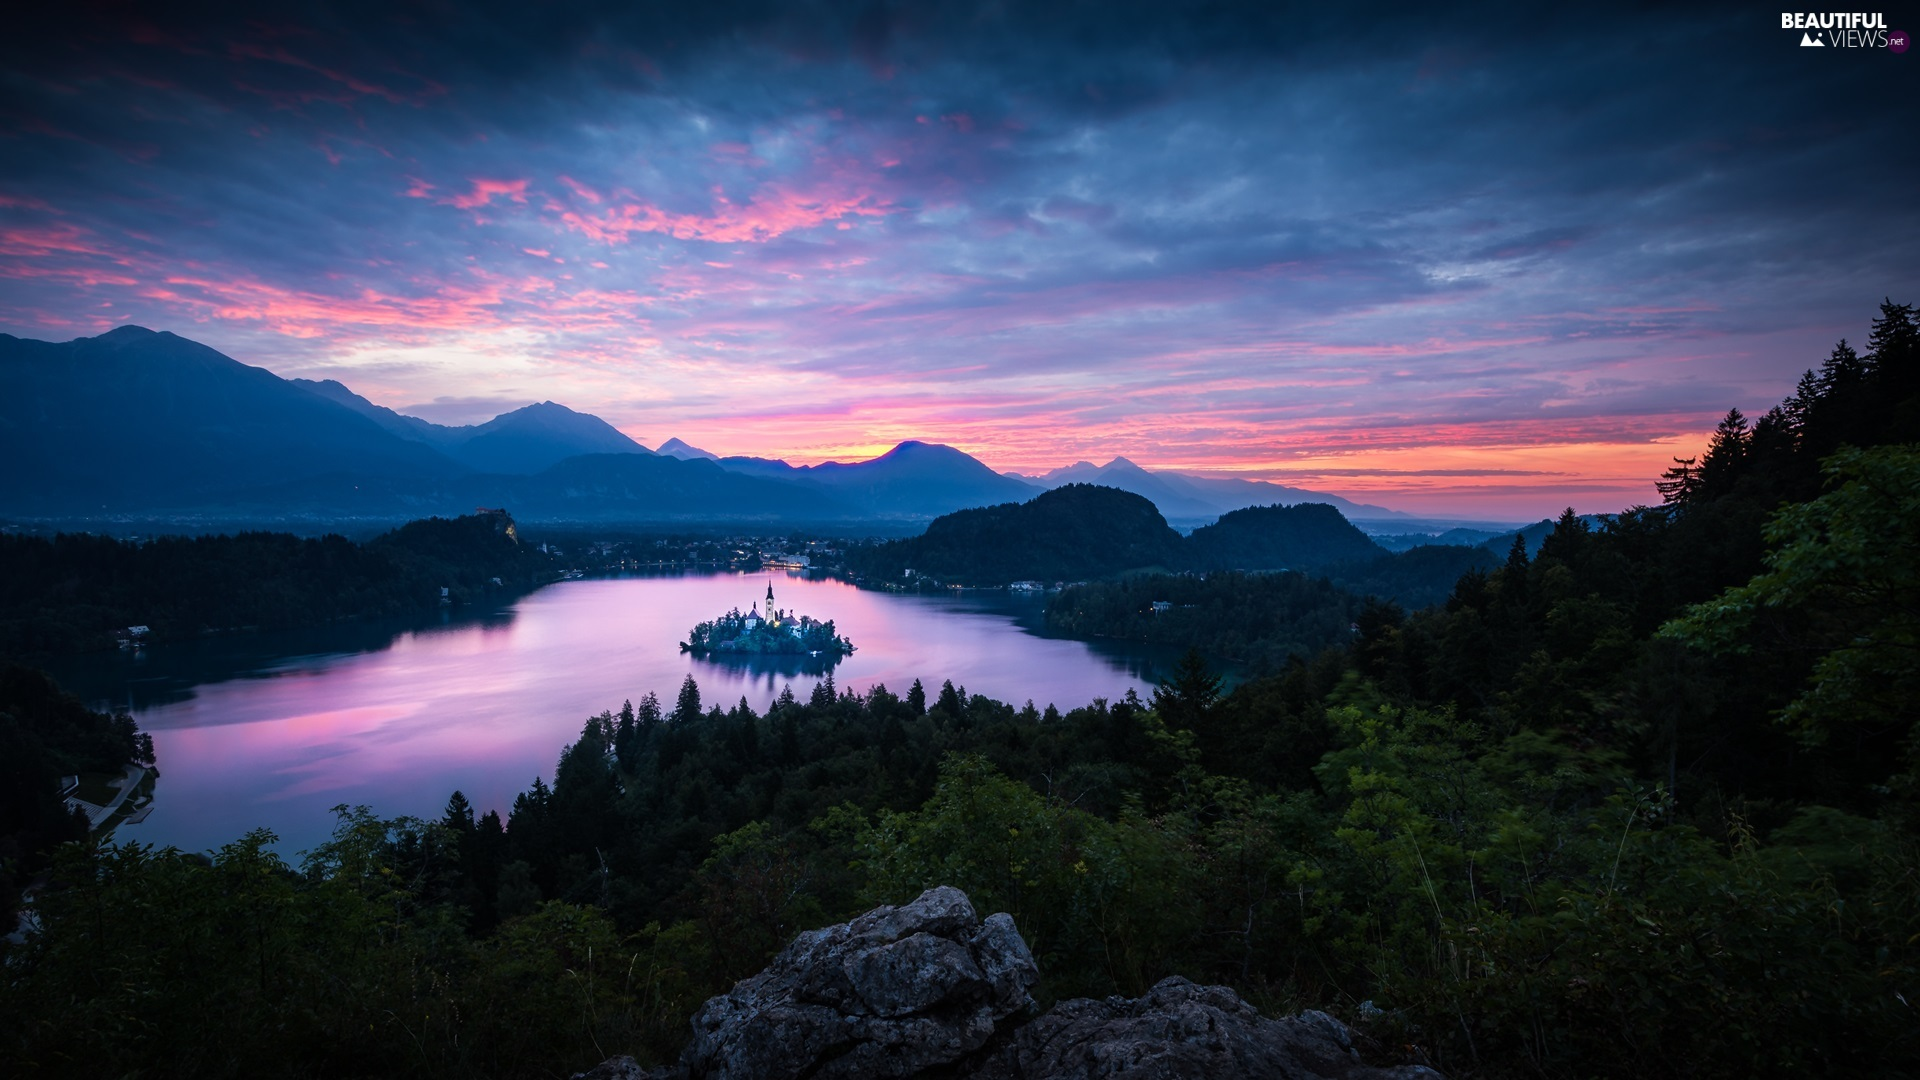 Lake Bled, Blejski Otok Island, Church of the Assumption of the Virgin Mary, Mountains, Sunrise, Slovenia, viewes, clouds, trees